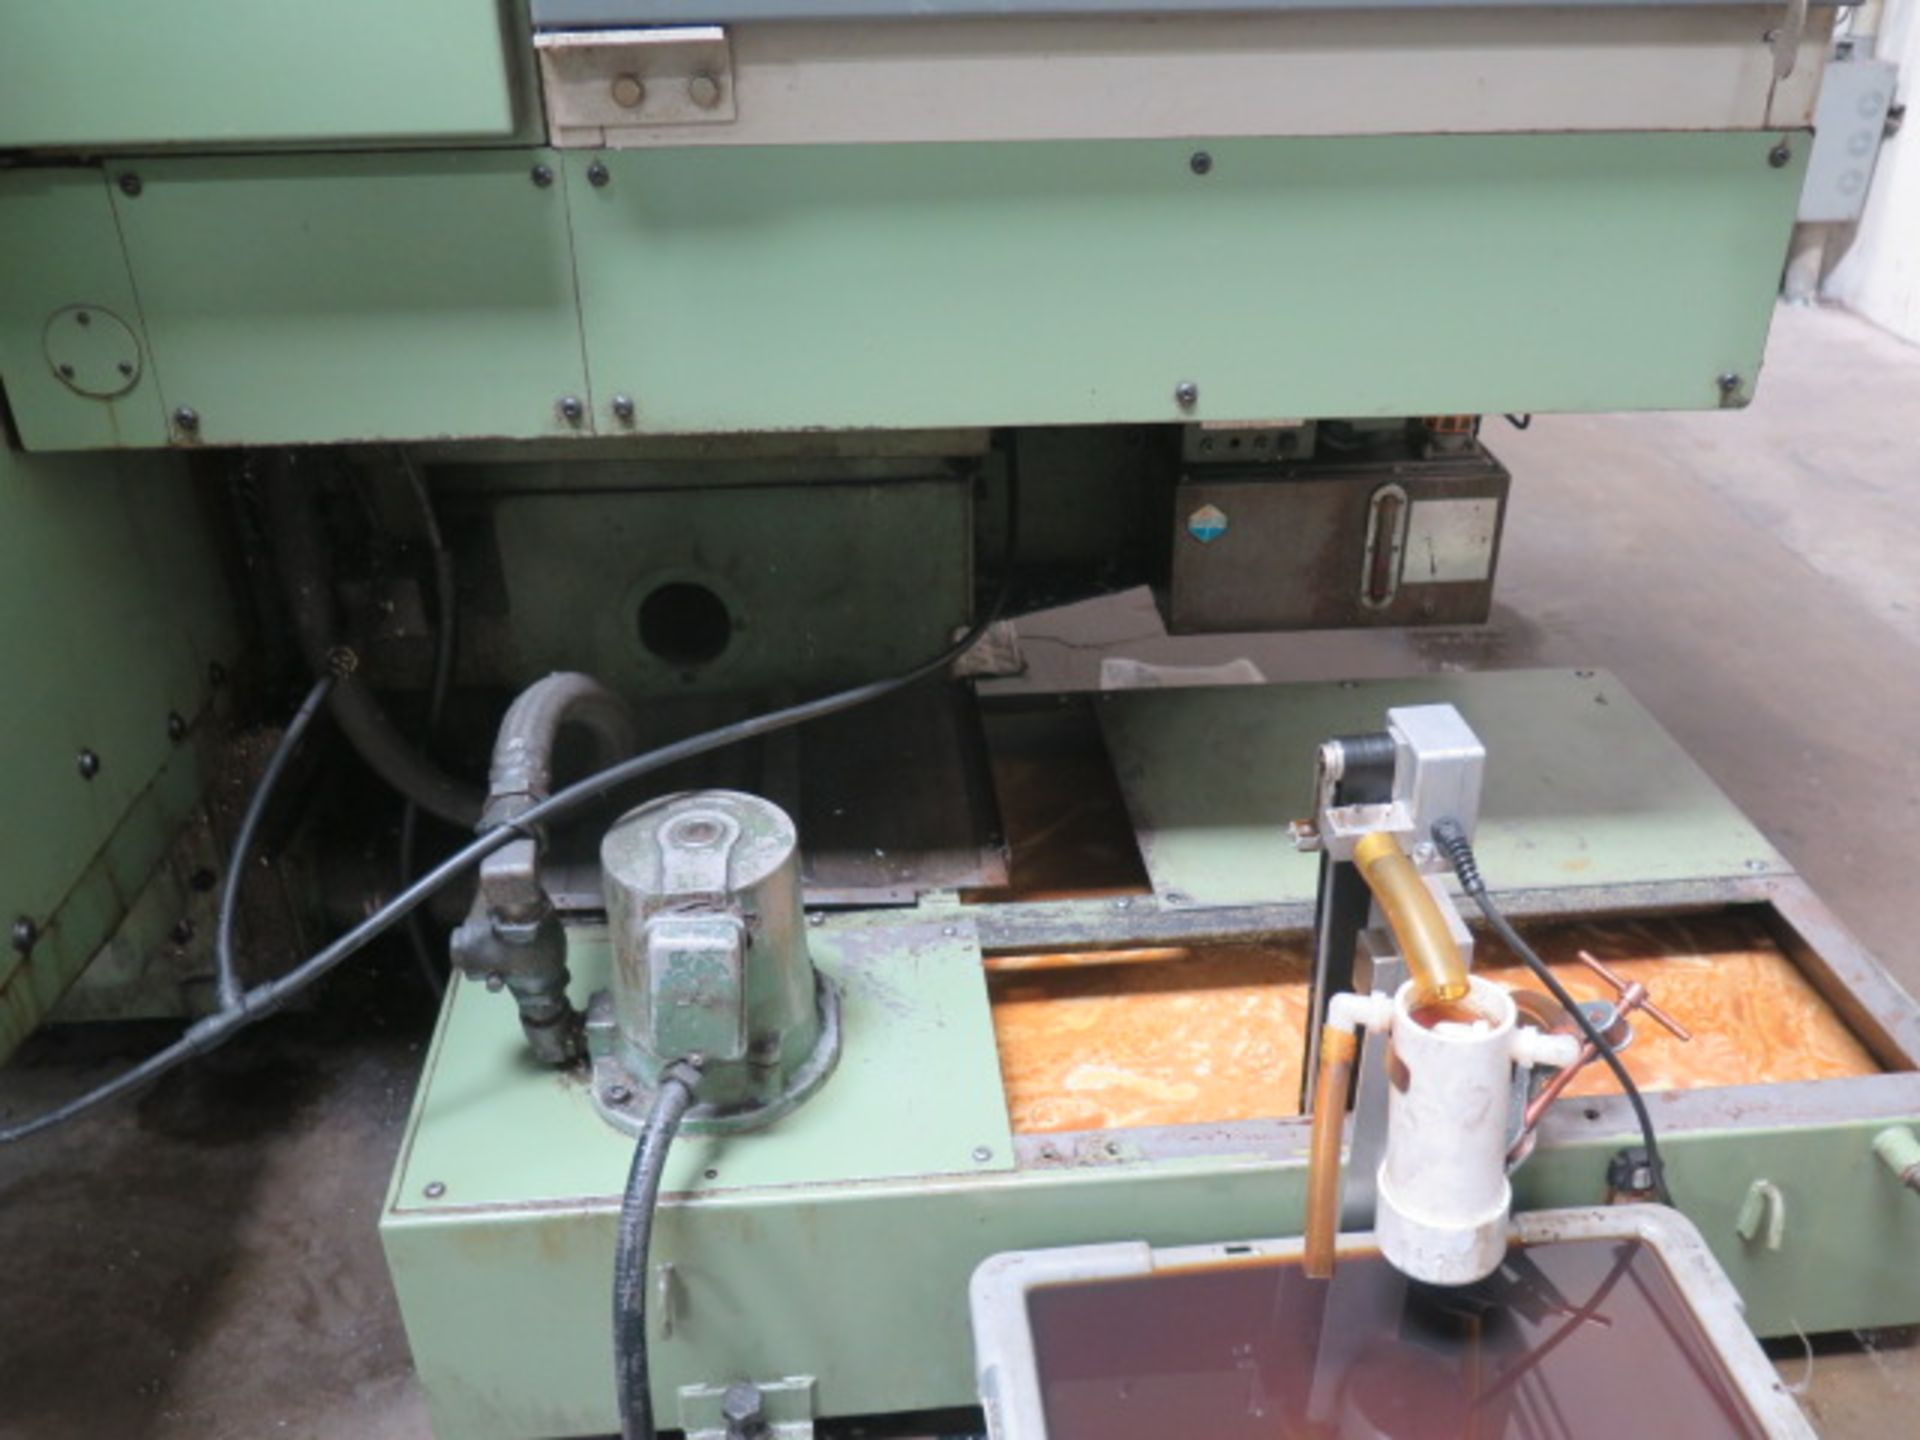 Moti Seiki MV-35/40 CNC VMC s/n 759 w/ Fanuc System 11M Controls, 20-Station ATC, SOLD AS IS - Image 11 of 14